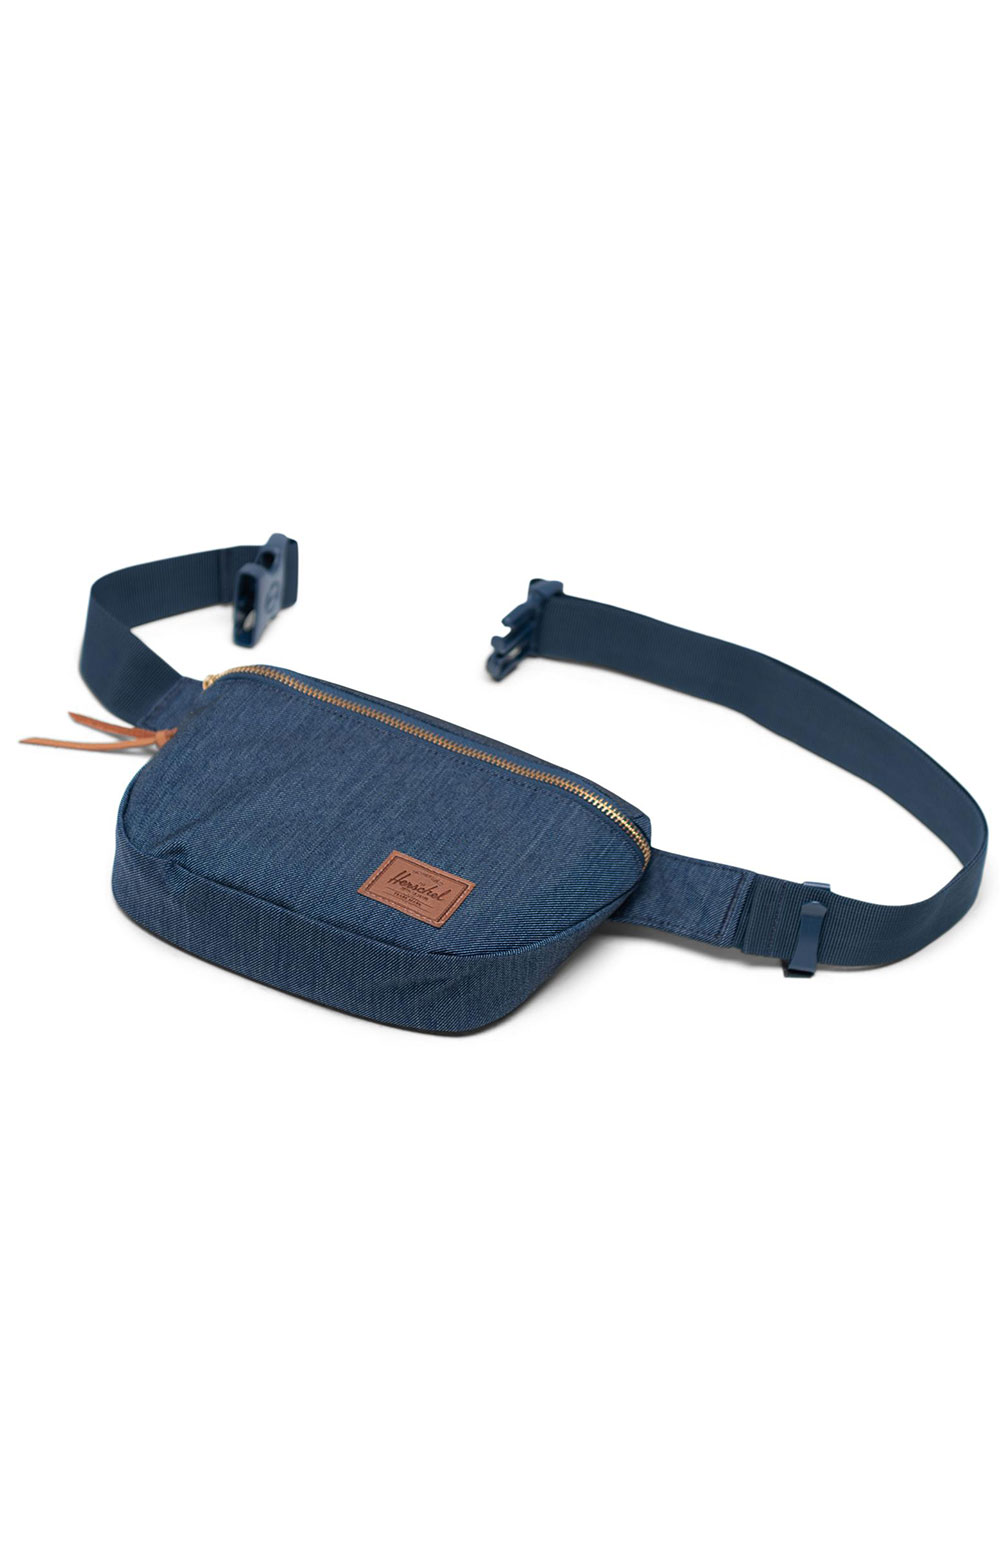 Fifteen Hip Pack - Indigo Denim X  3